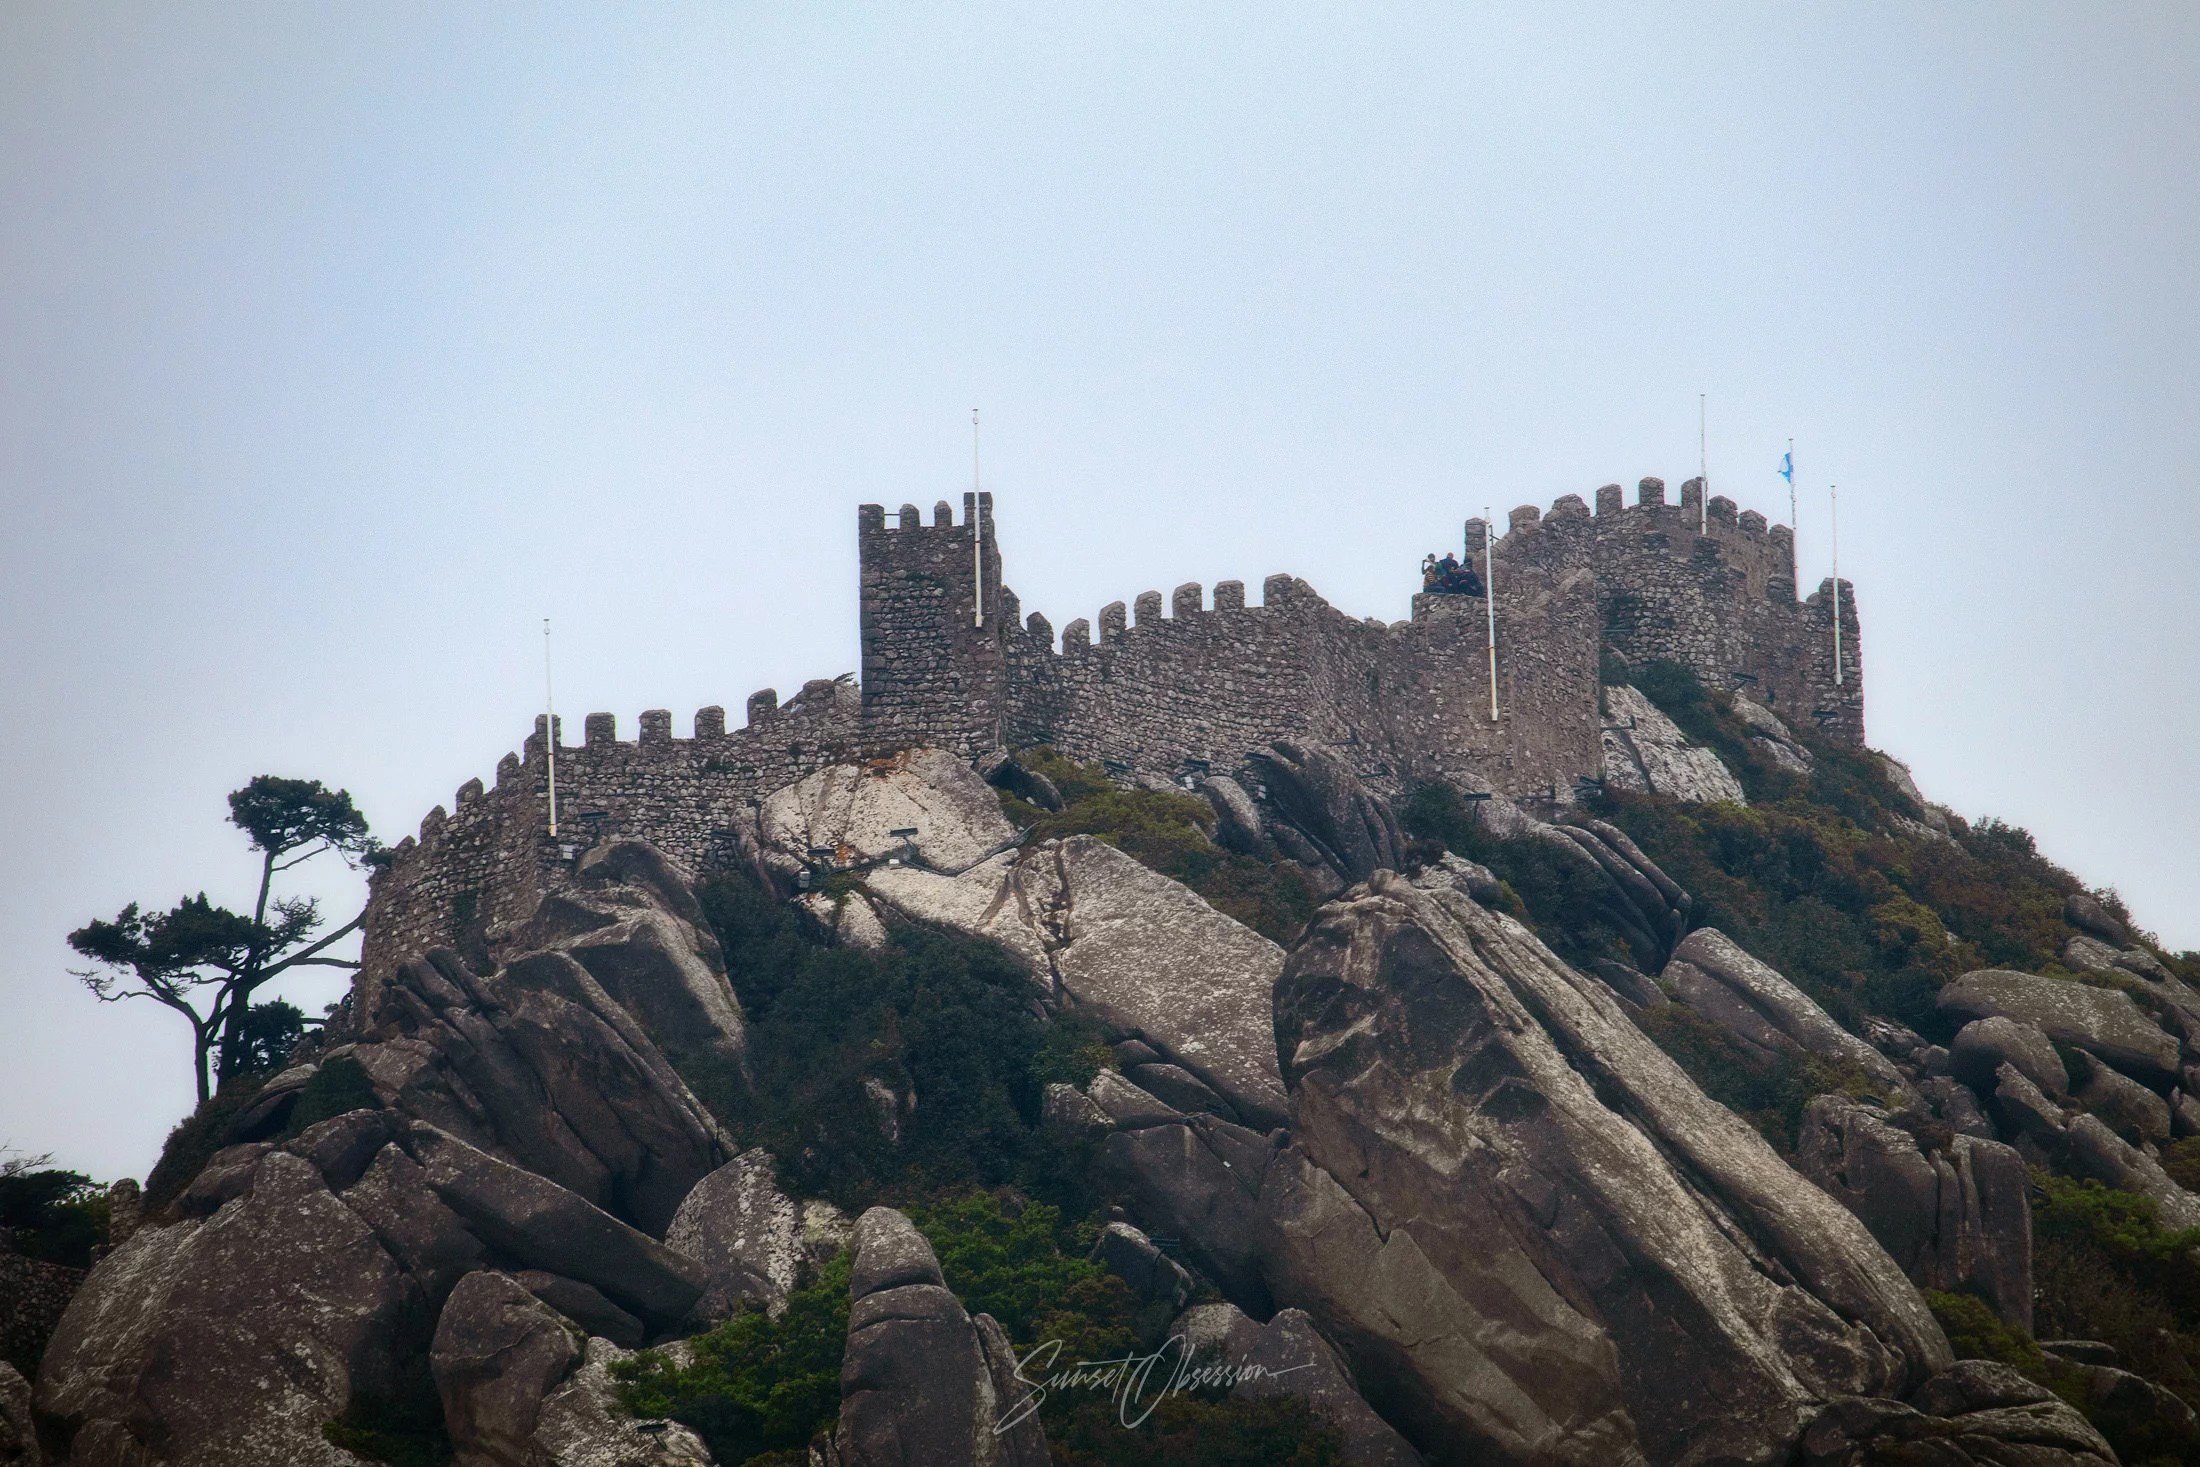 The Castle of the Moors is a great photo spot for an overcast day in Sintra